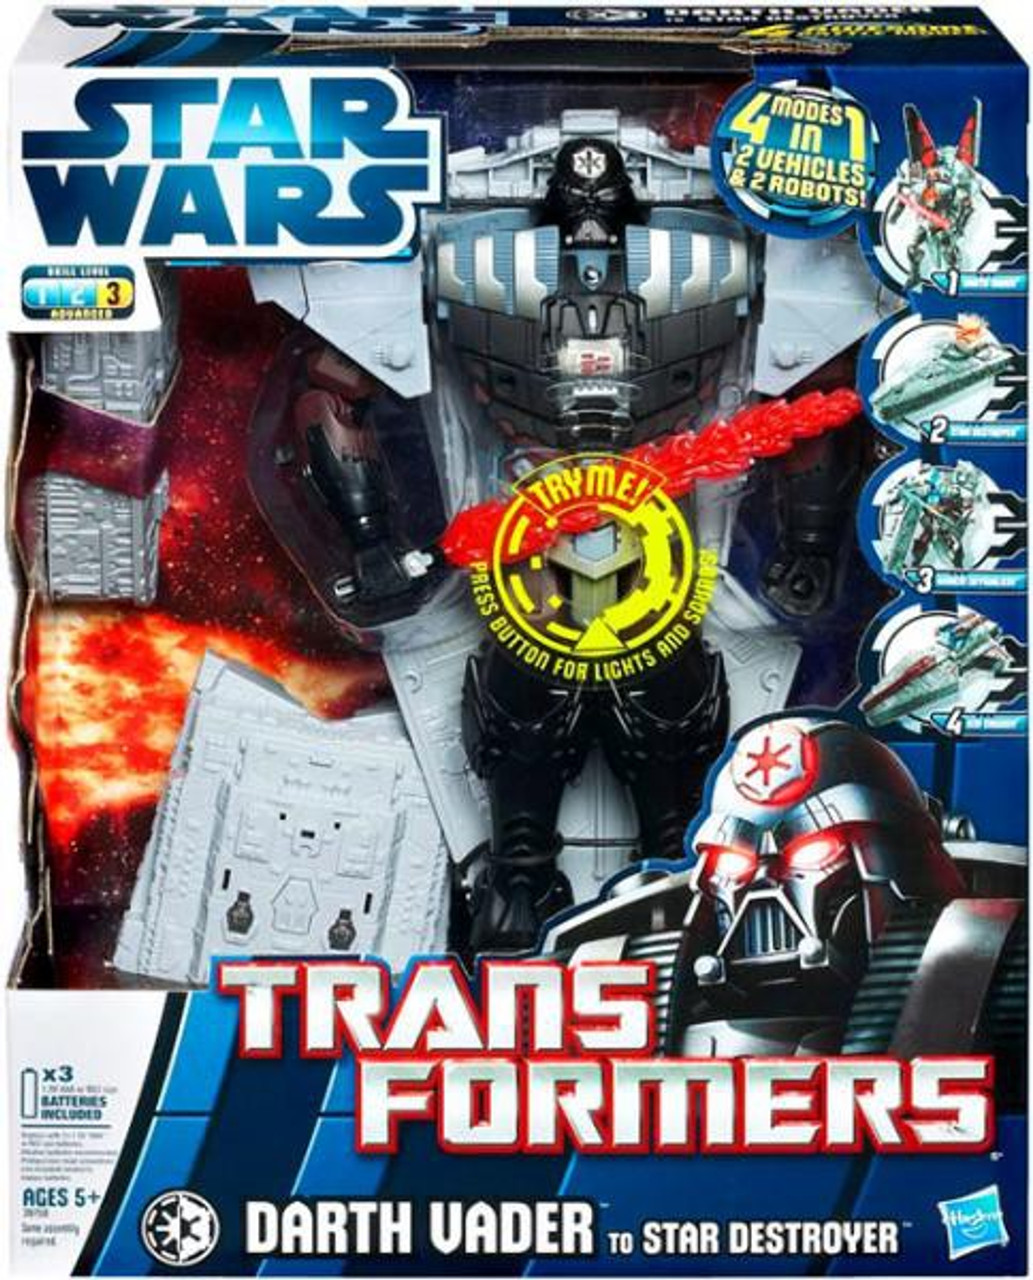 Star Wars Empire Strikes Back Transformers 2012 Darth Vader to Star Destroyer Action Figure [Version 1]